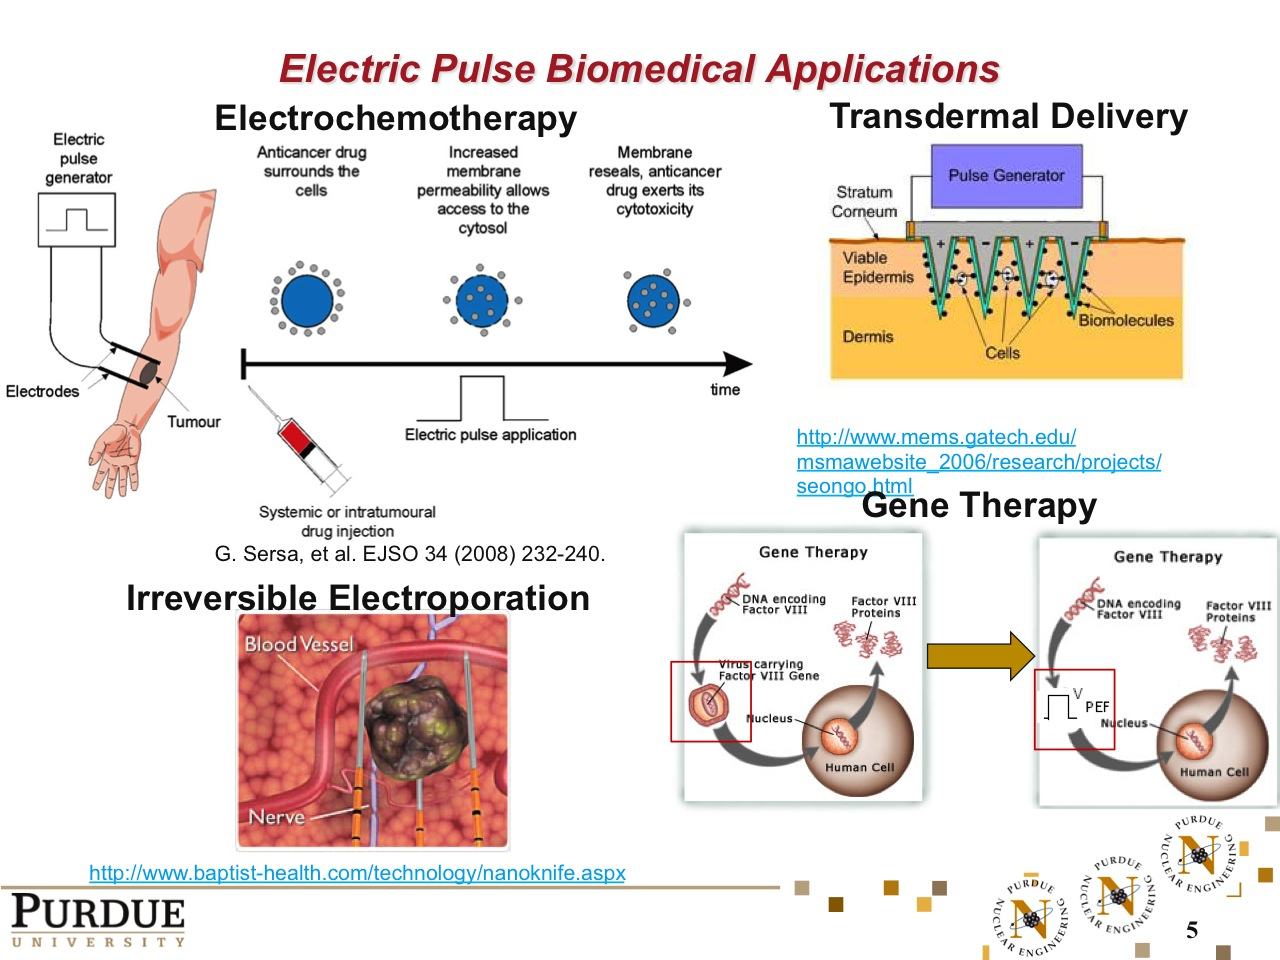 Electric Pulse Biomedical Applications